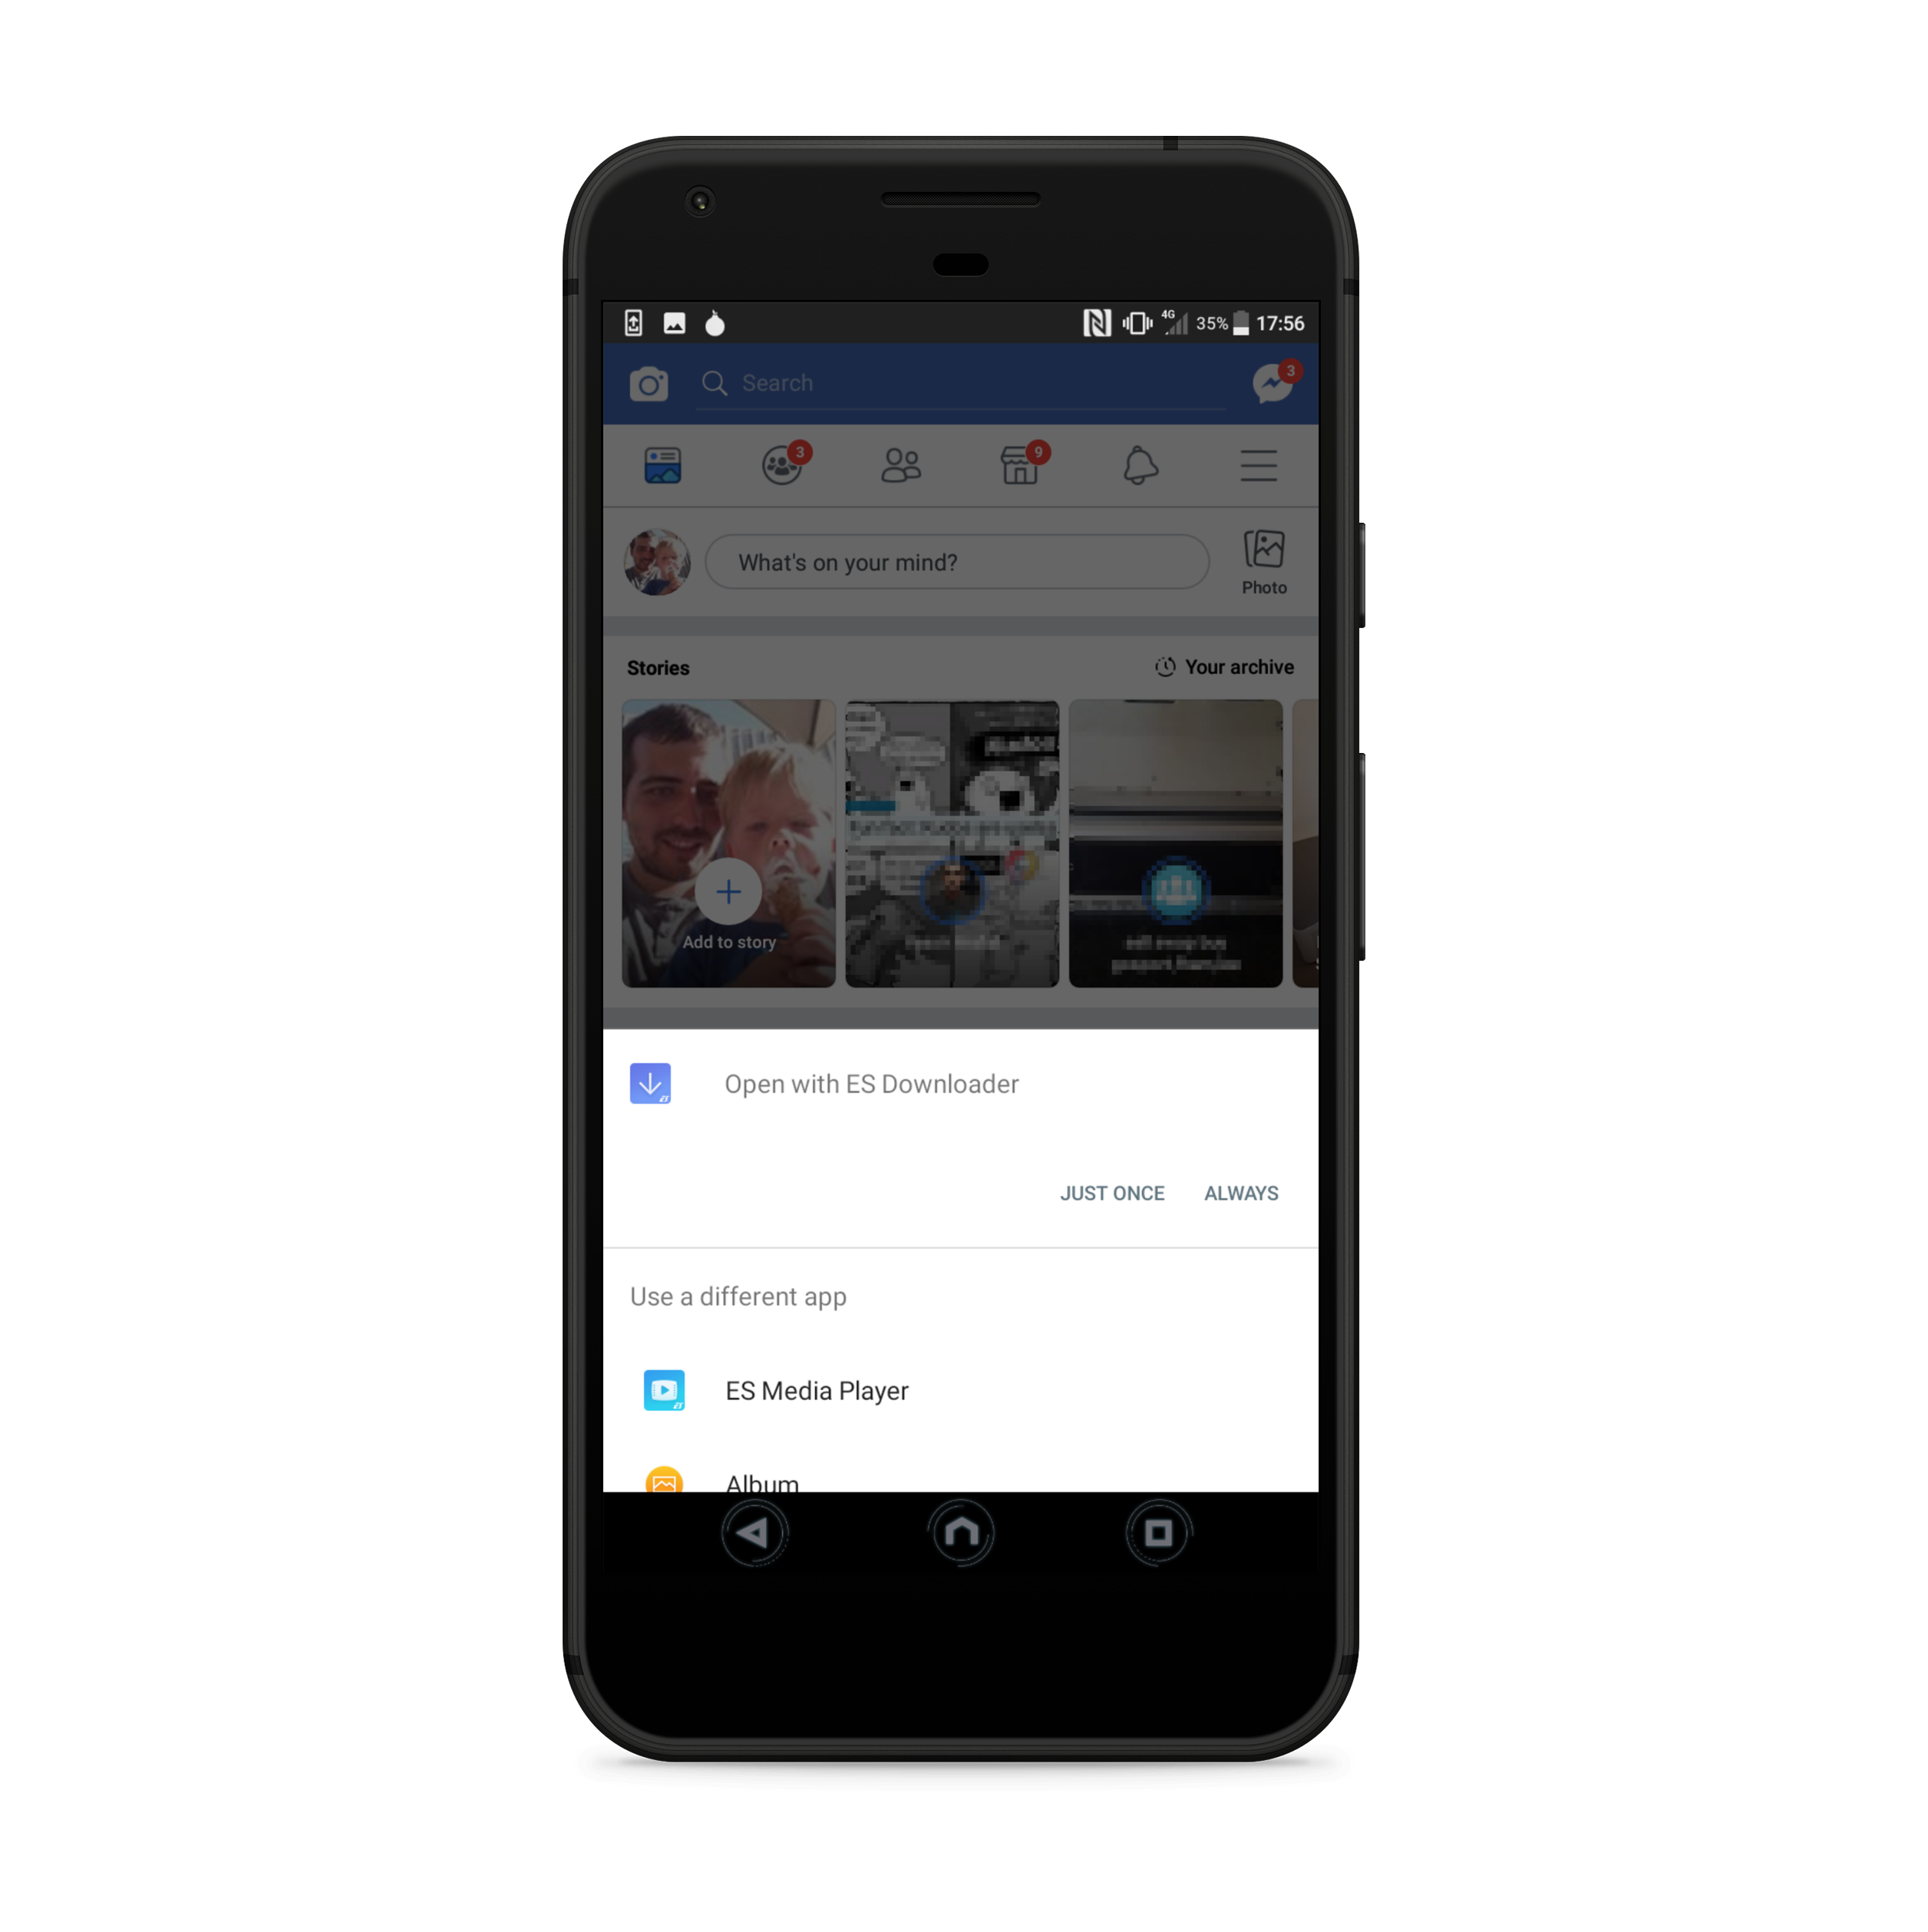 Ashley King - Downloading any file via Facebook for Android